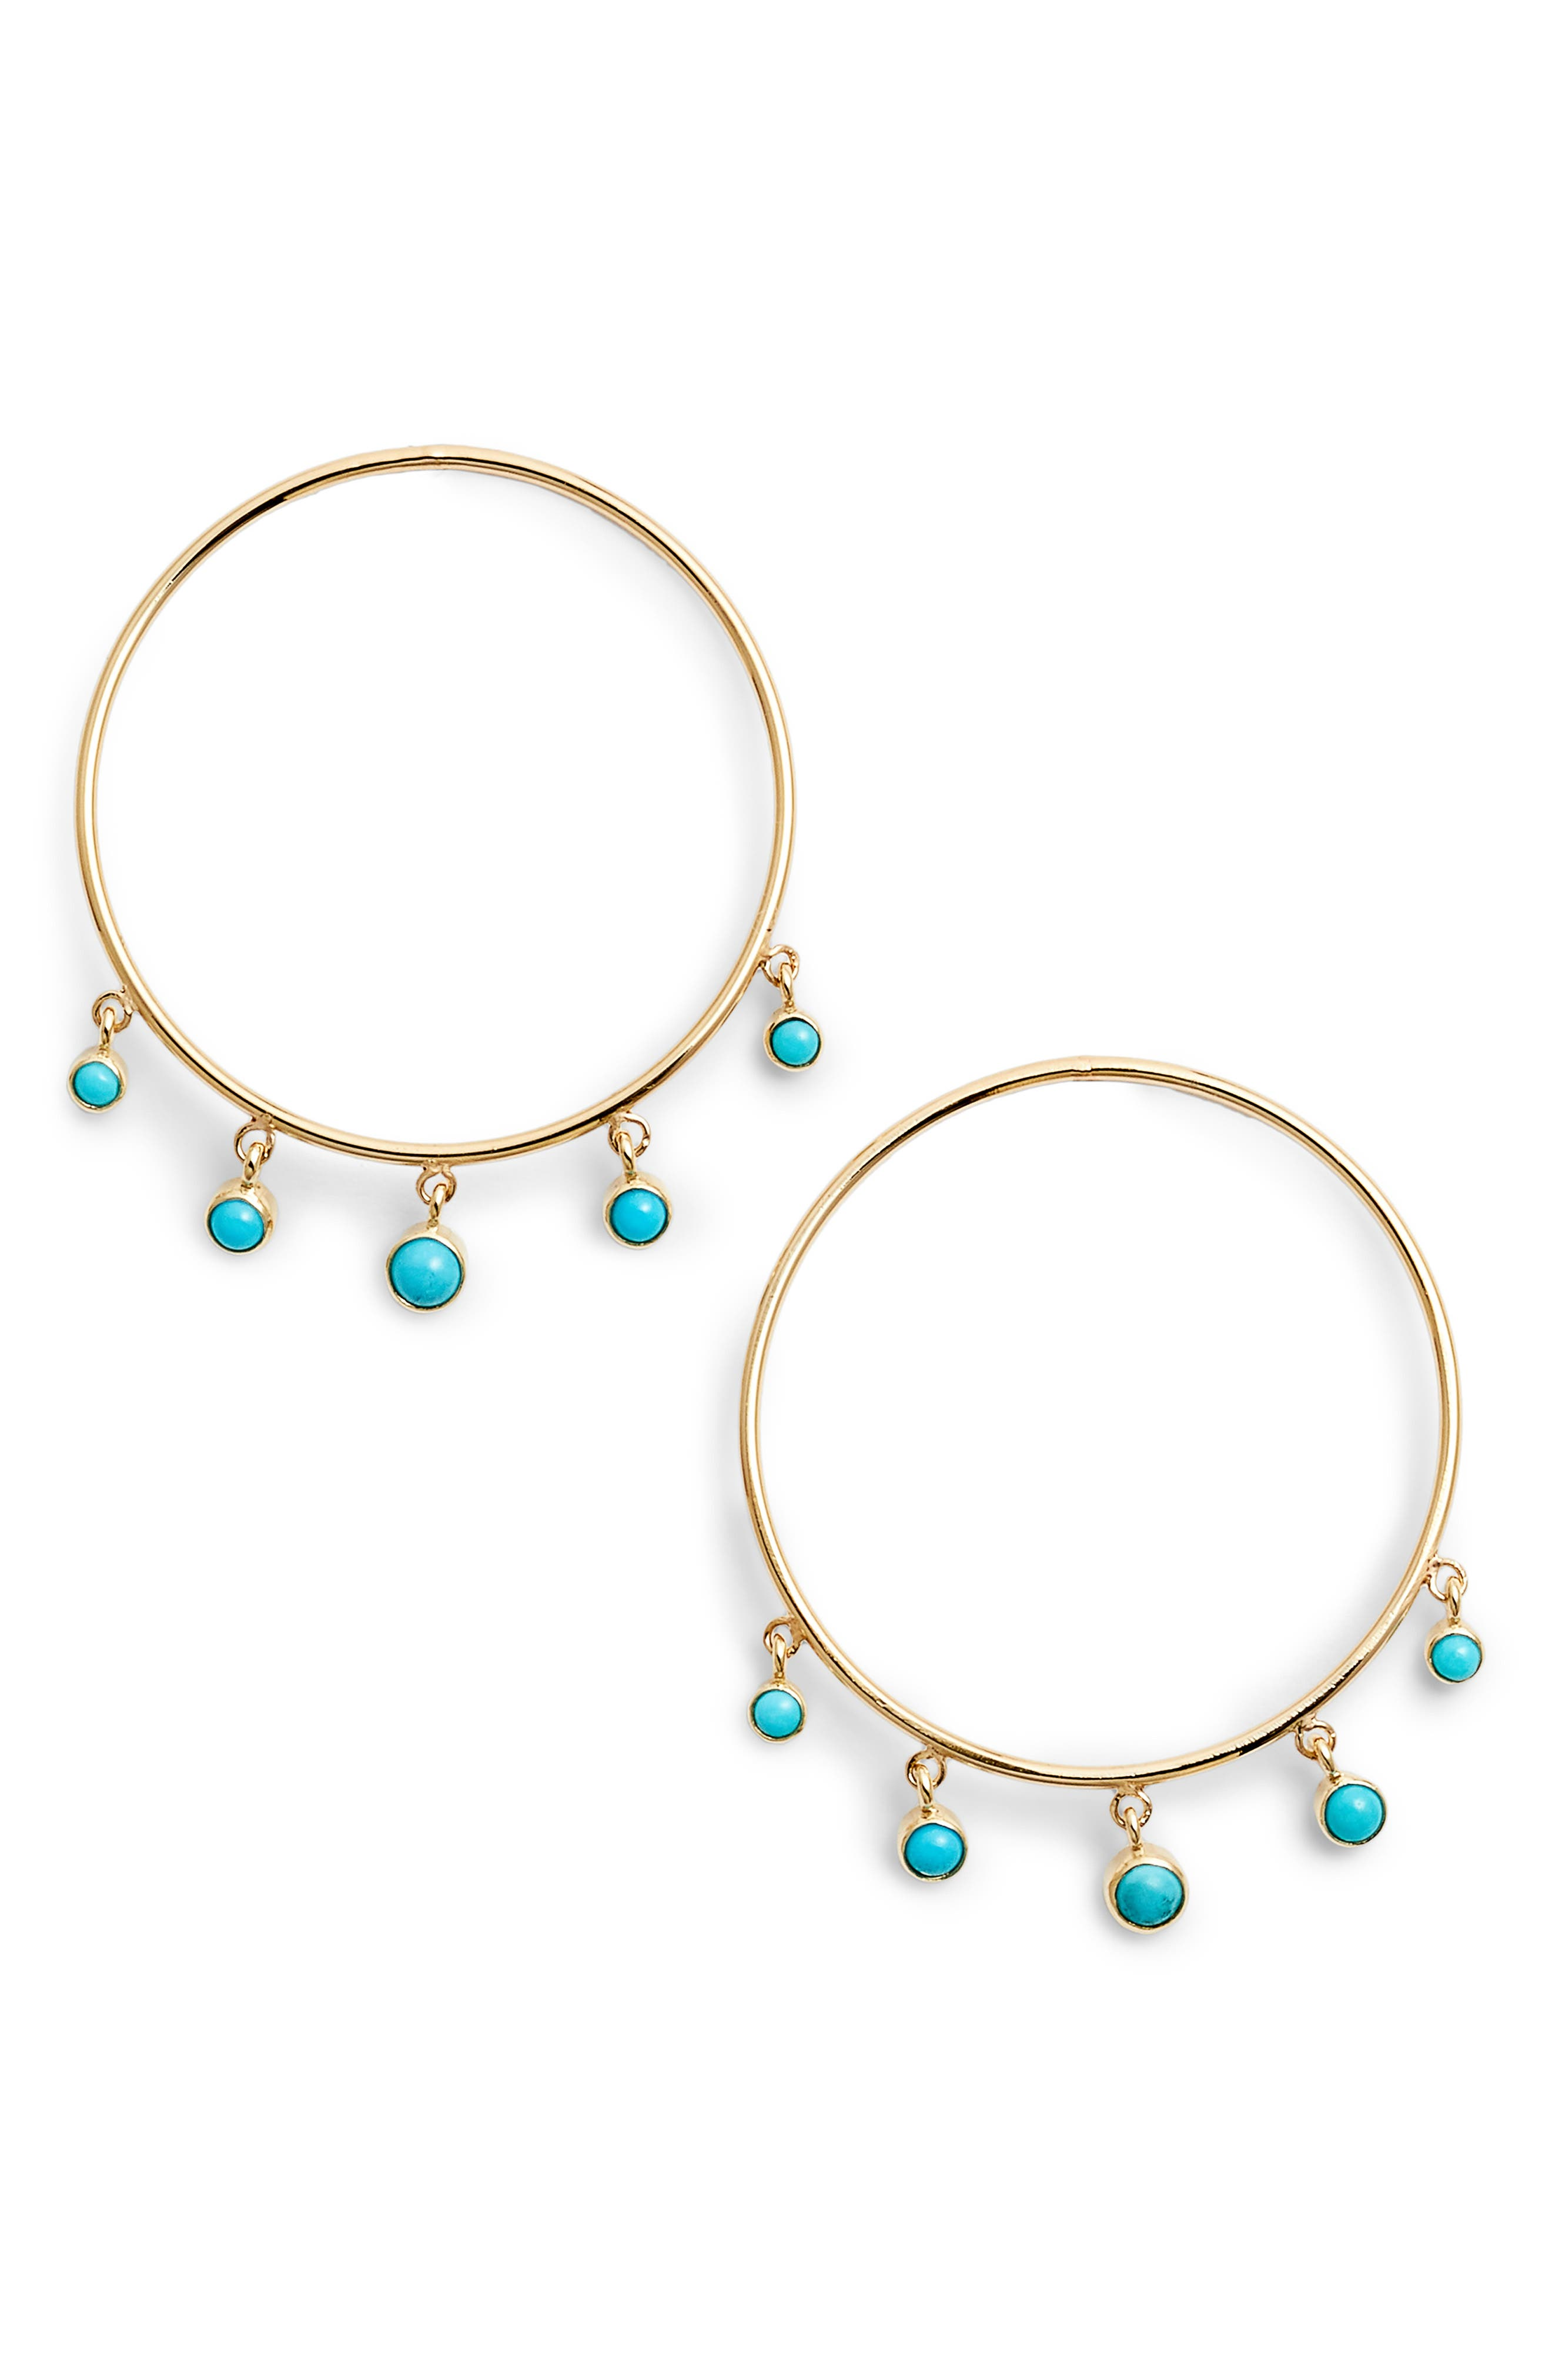 Zoe Chicco Dangling Turquoise Hoop Earrings